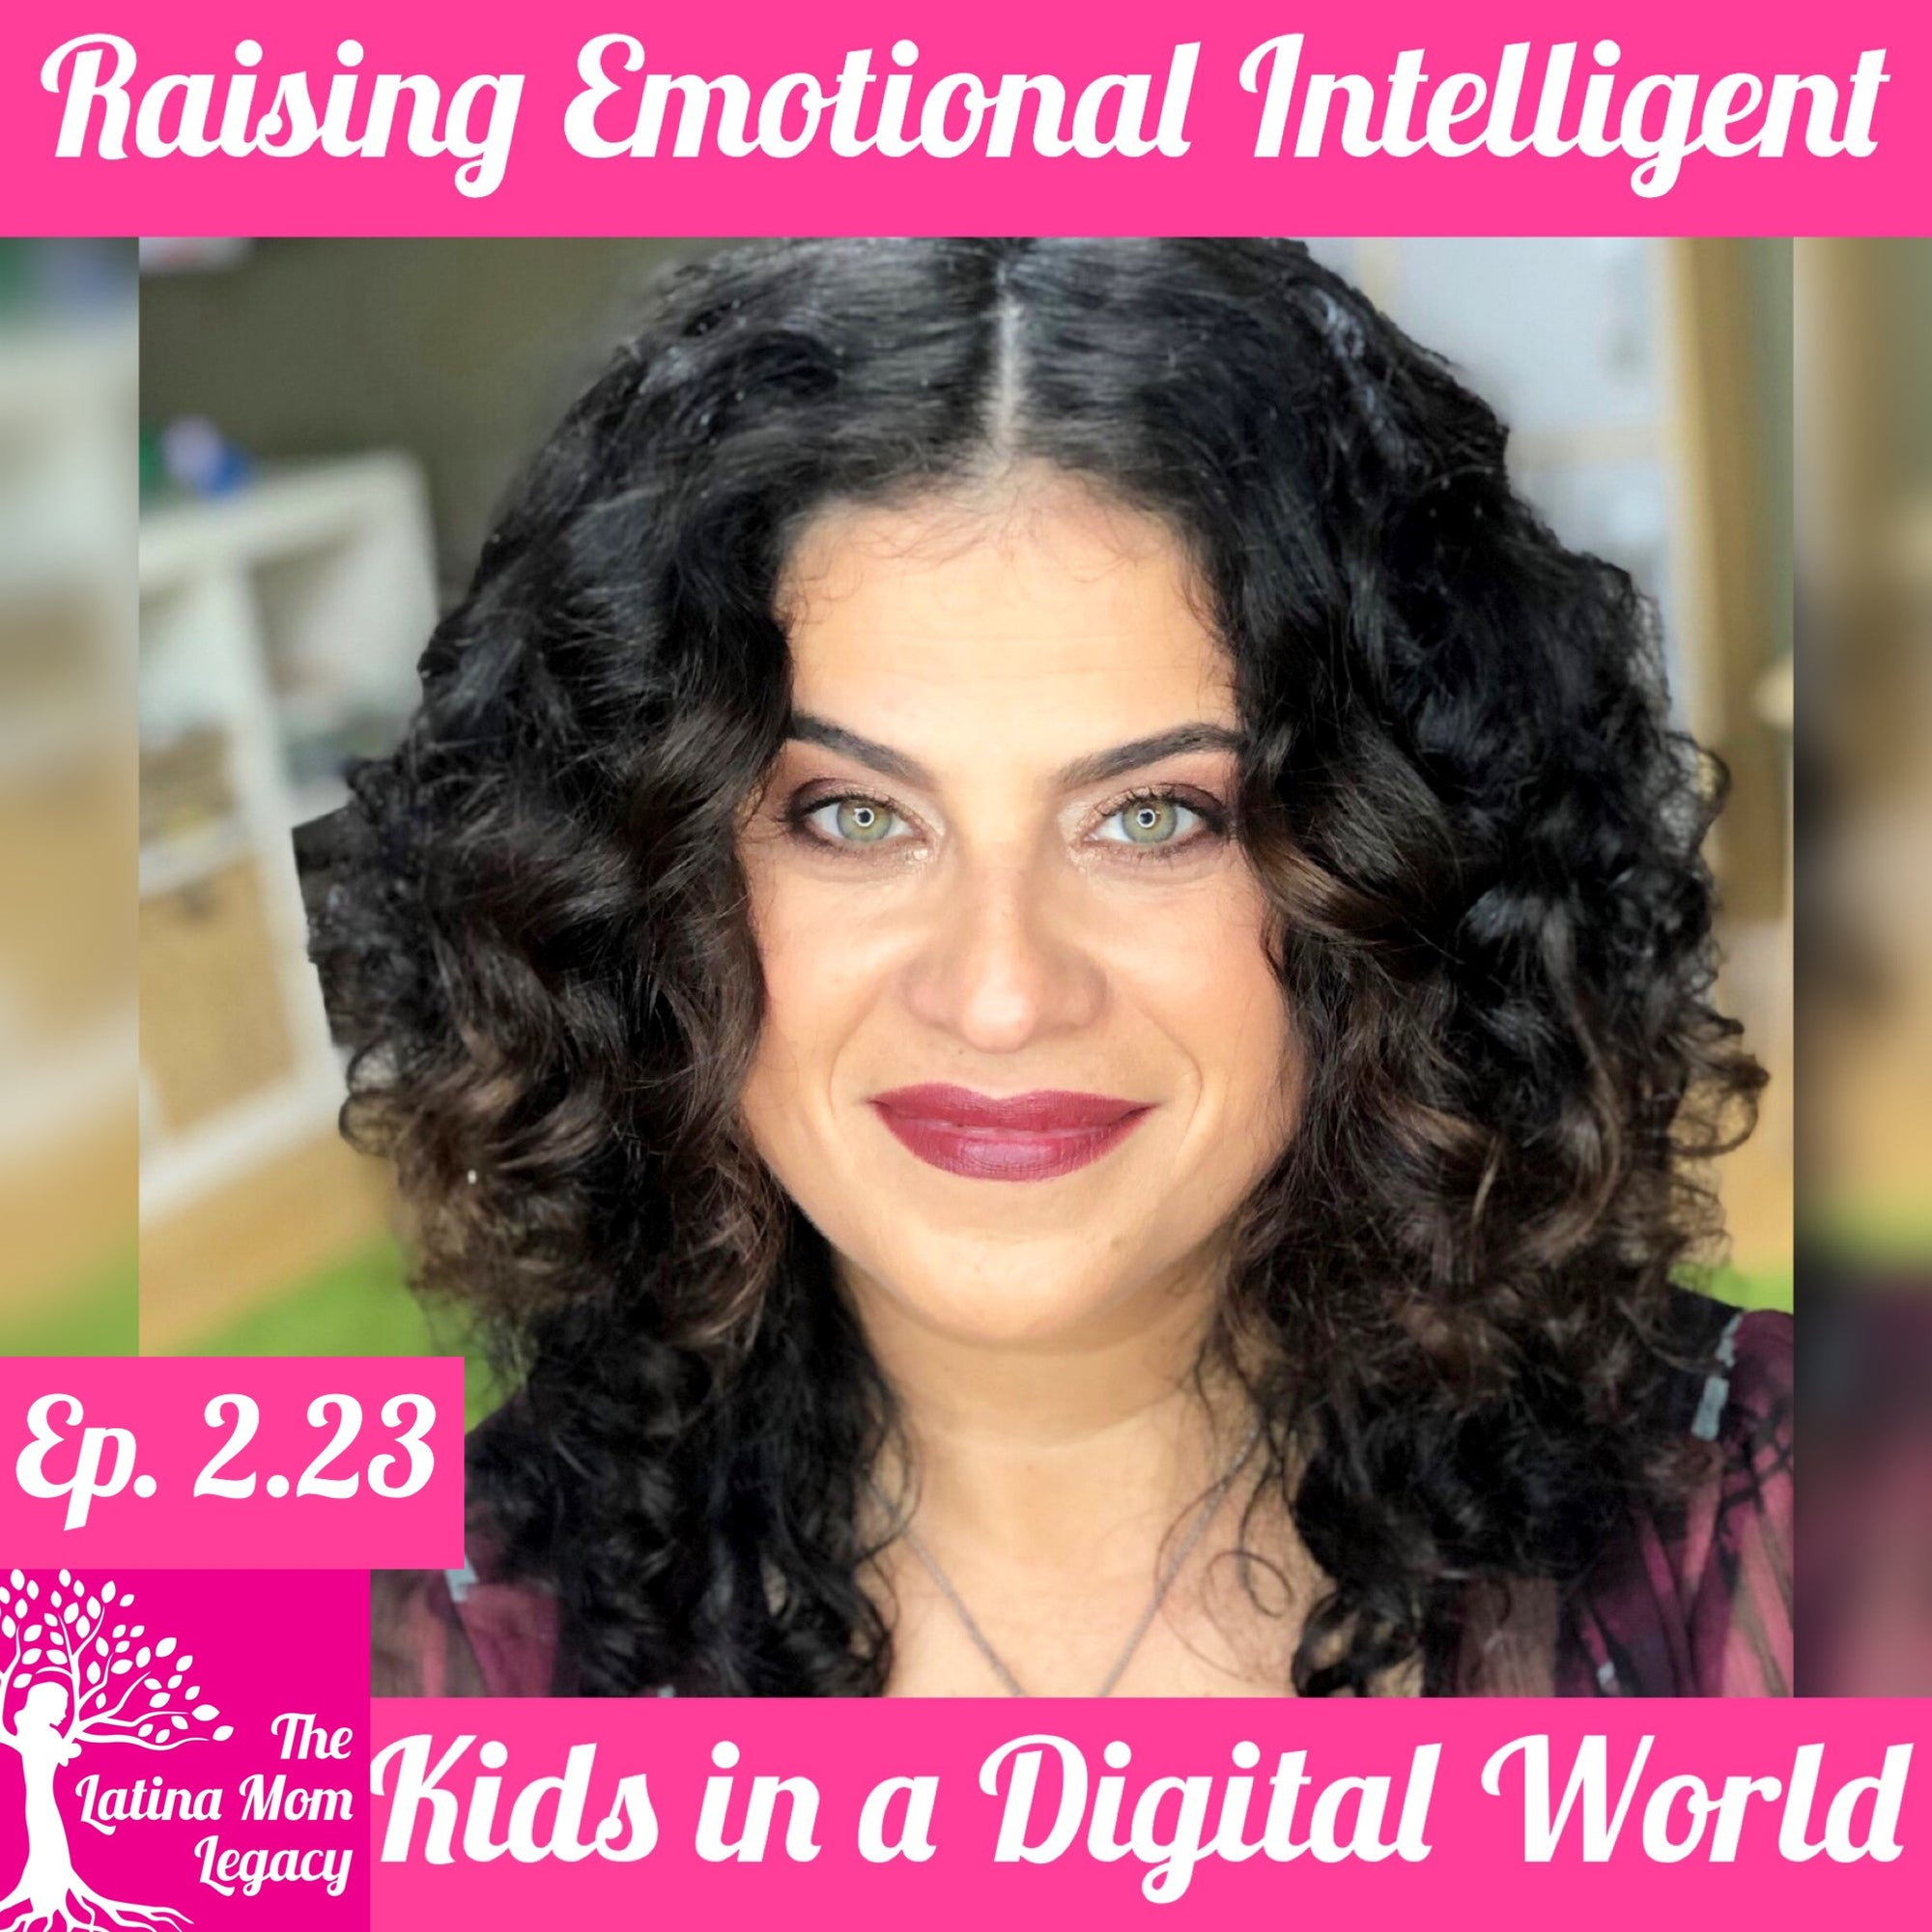 2.23 Lina A. Sandaal - How to Raise Emotionally Intelligent Kids in a Digital World